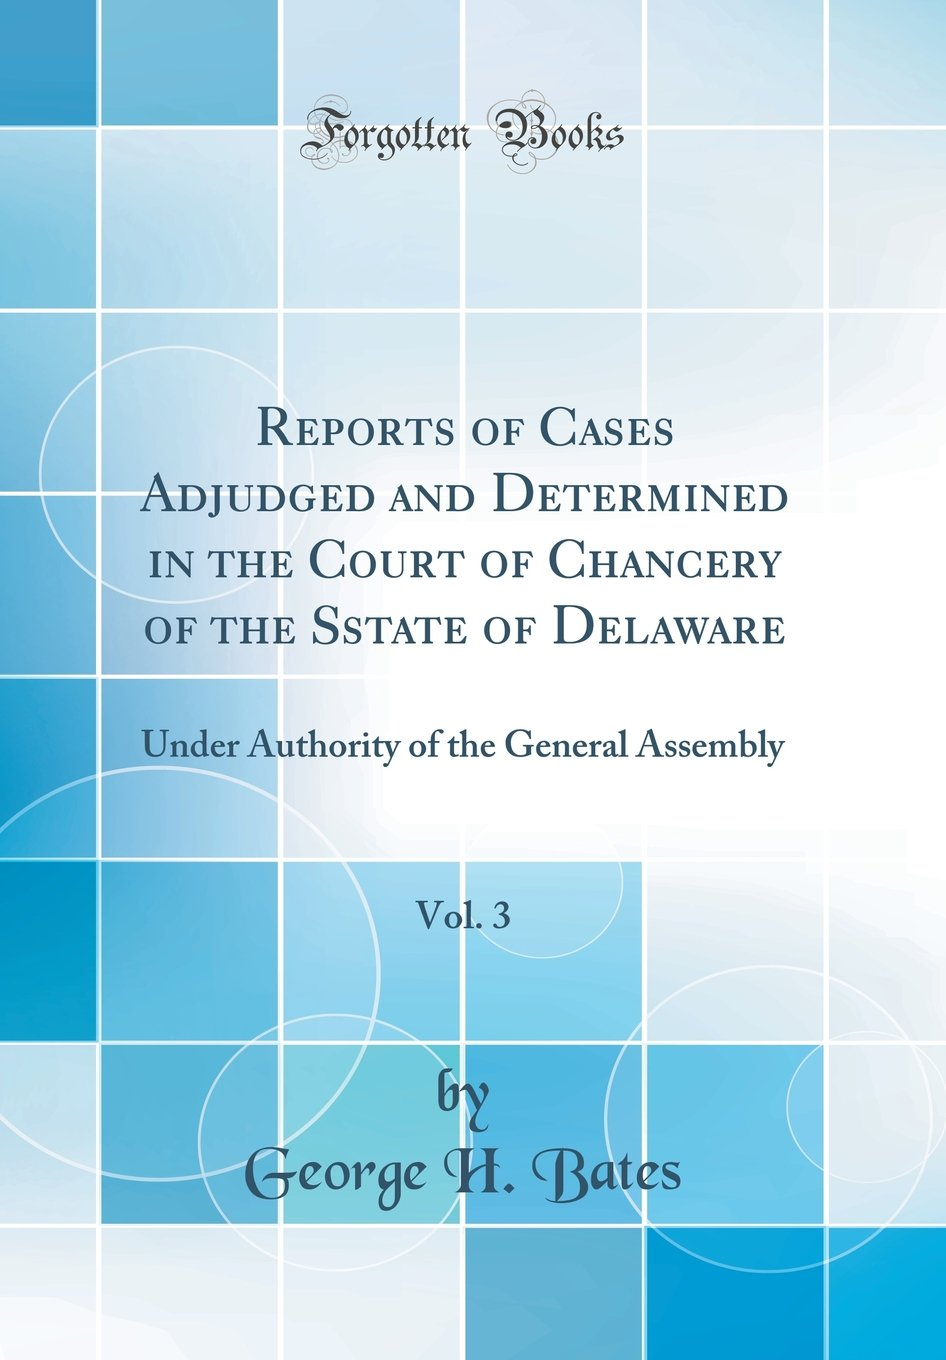 Reports Of Cases Adjudged And Determined In The Court Of Chancery Of